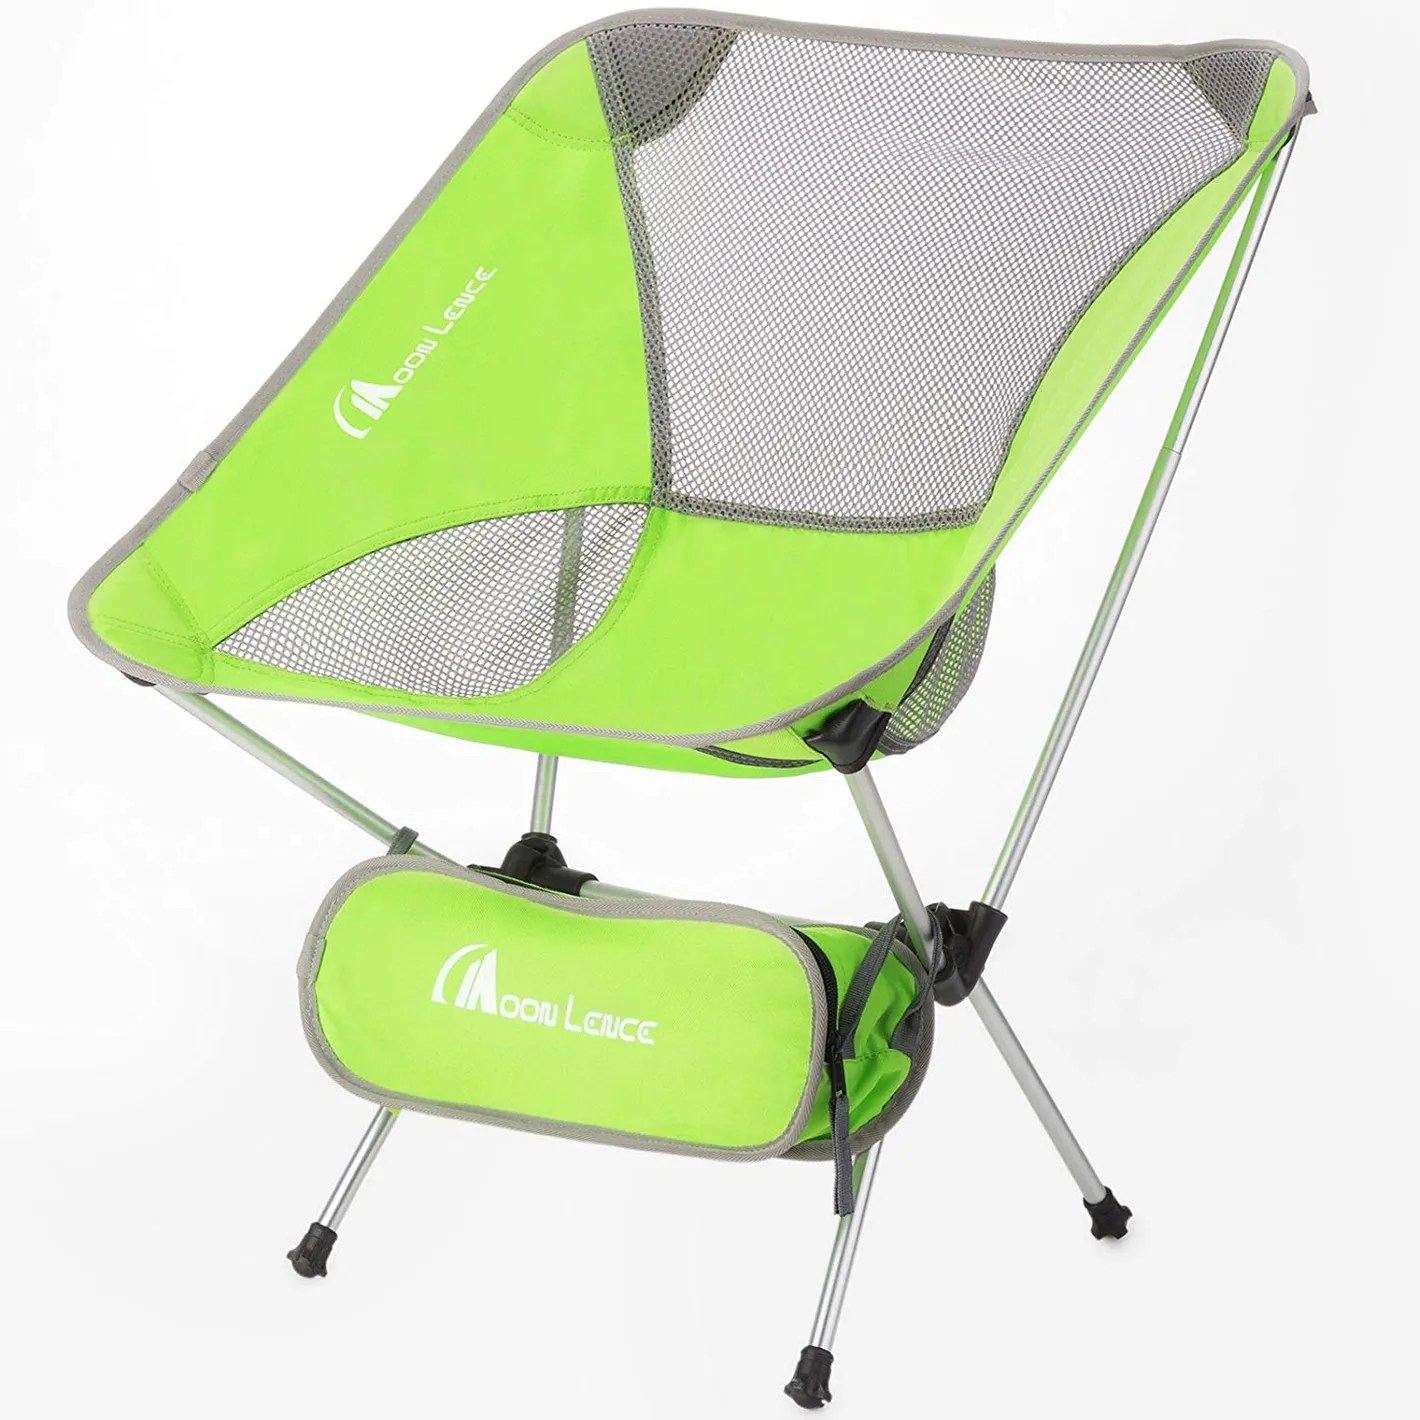 Coleman Comfortsmart Chair 13 Best Camping Chairs 2019